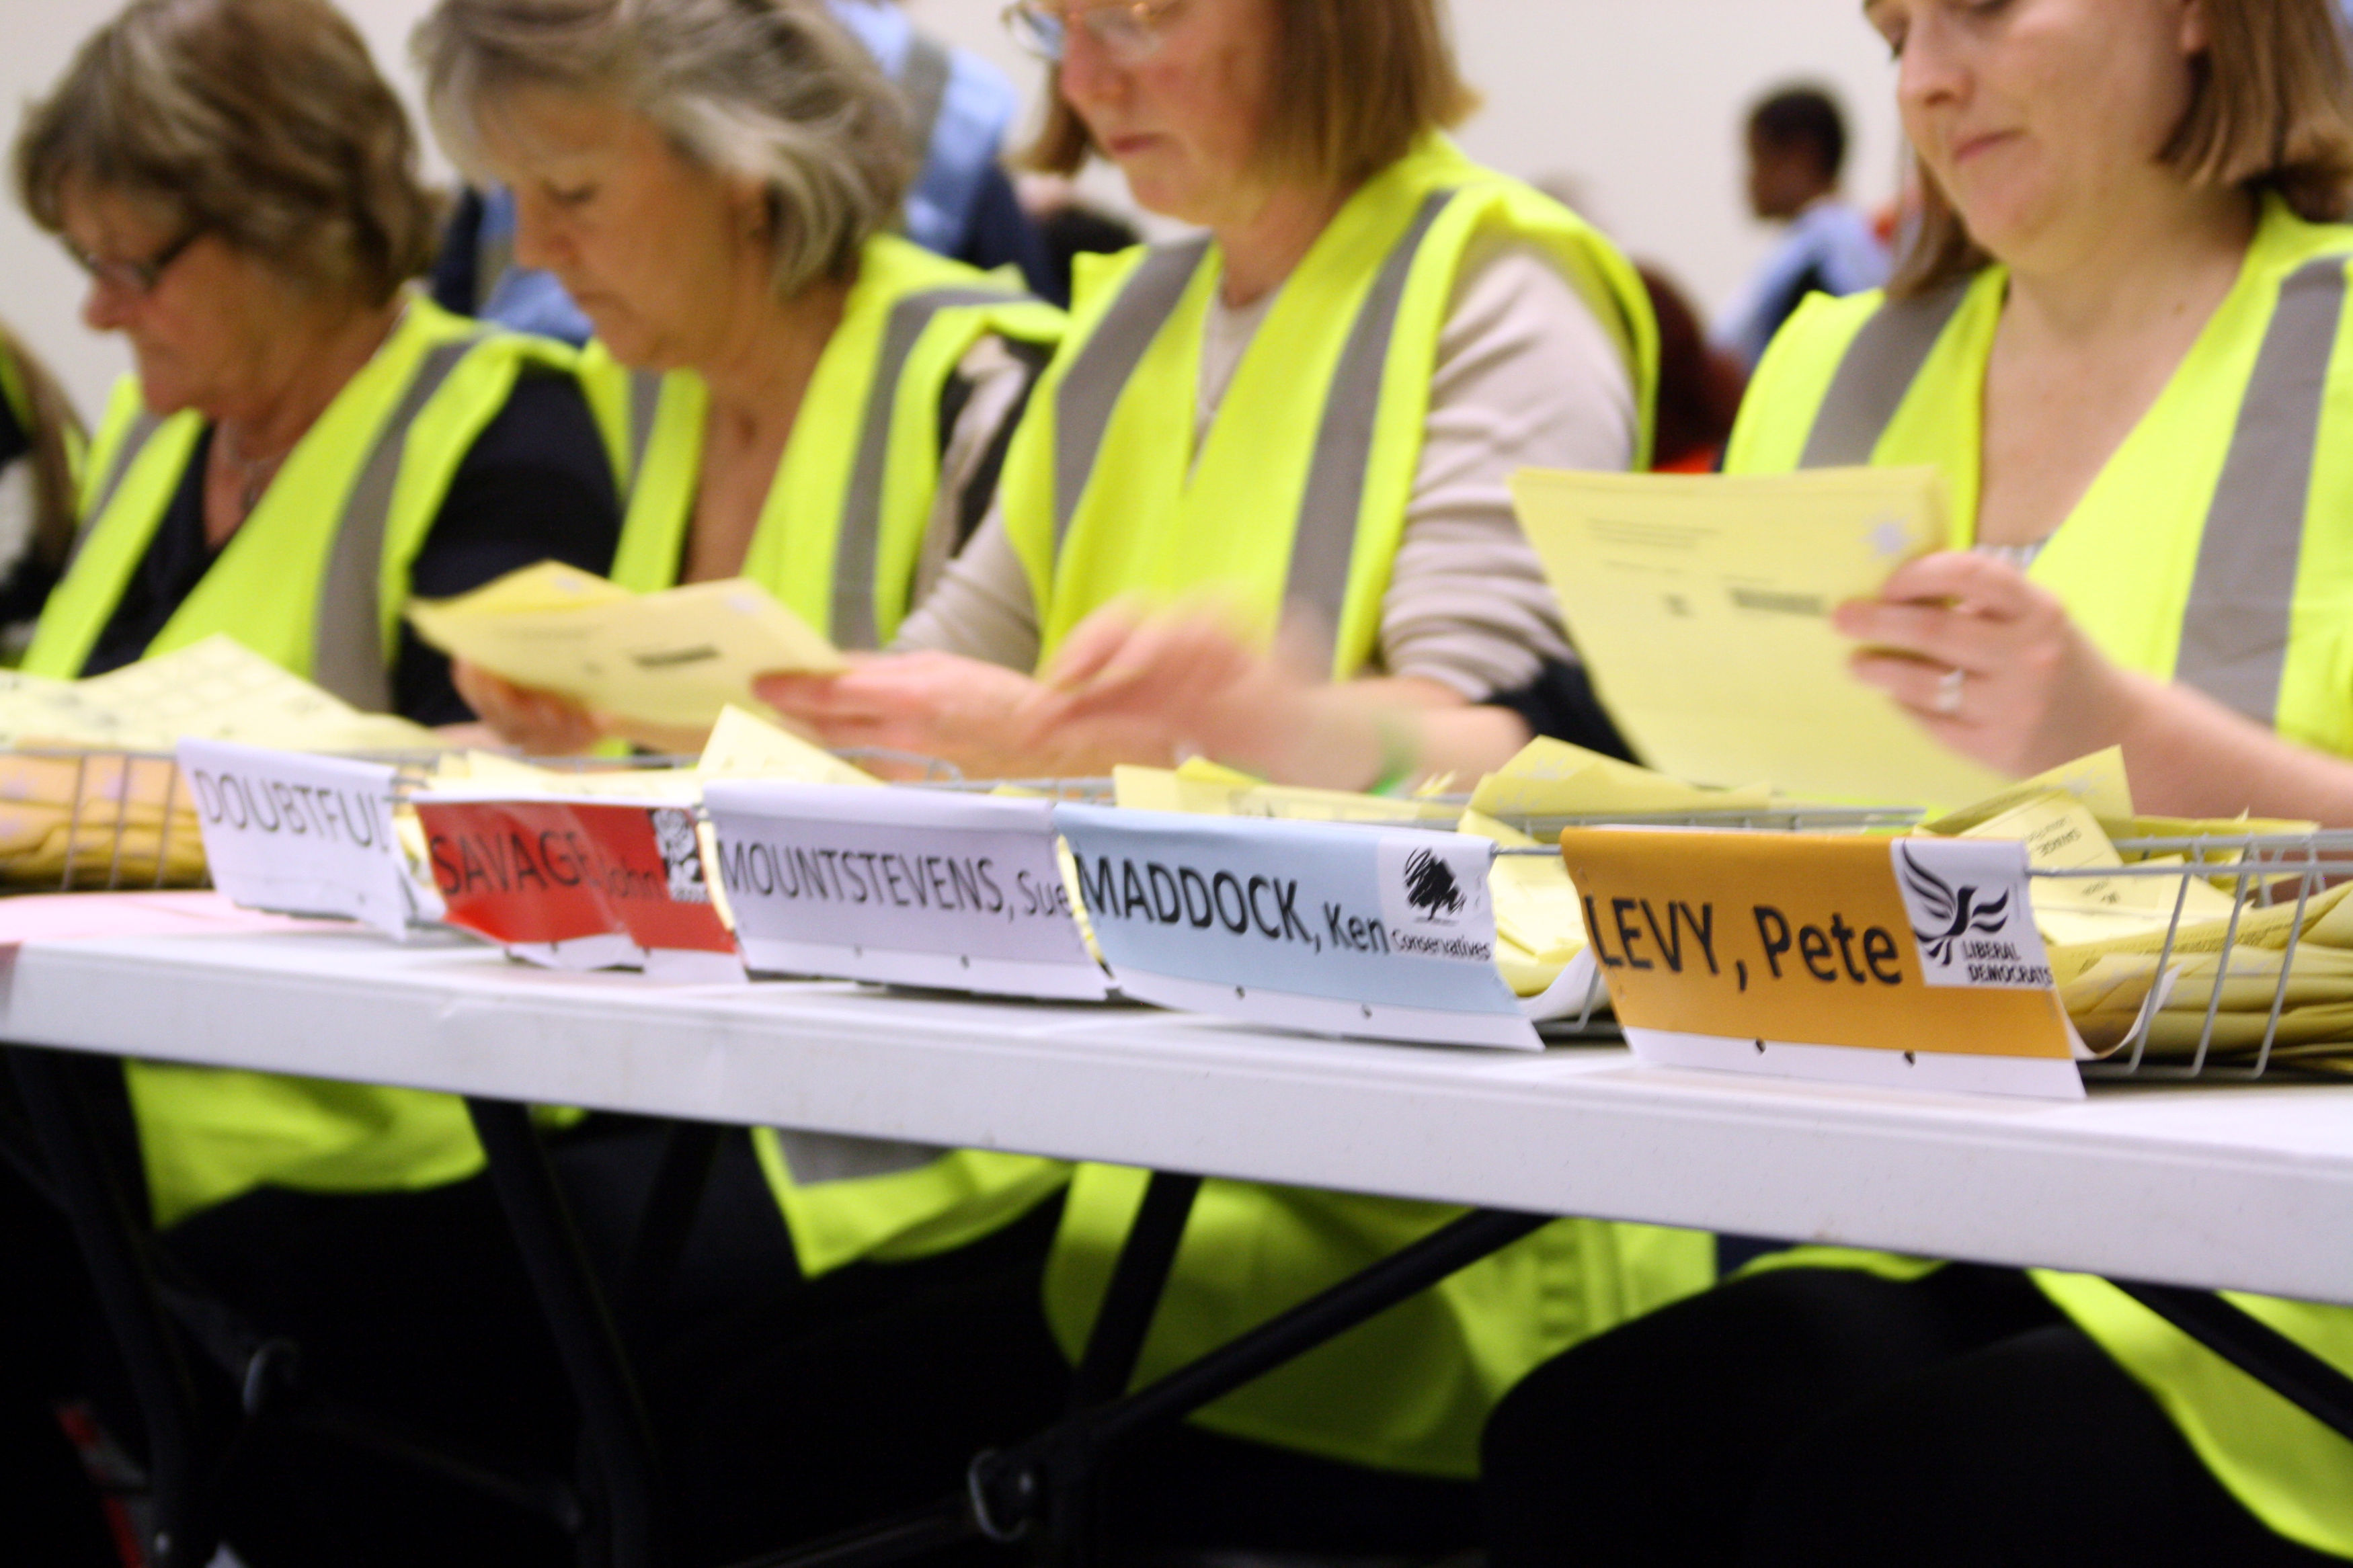 Counting agents sorting ballot papers on election day in 2012